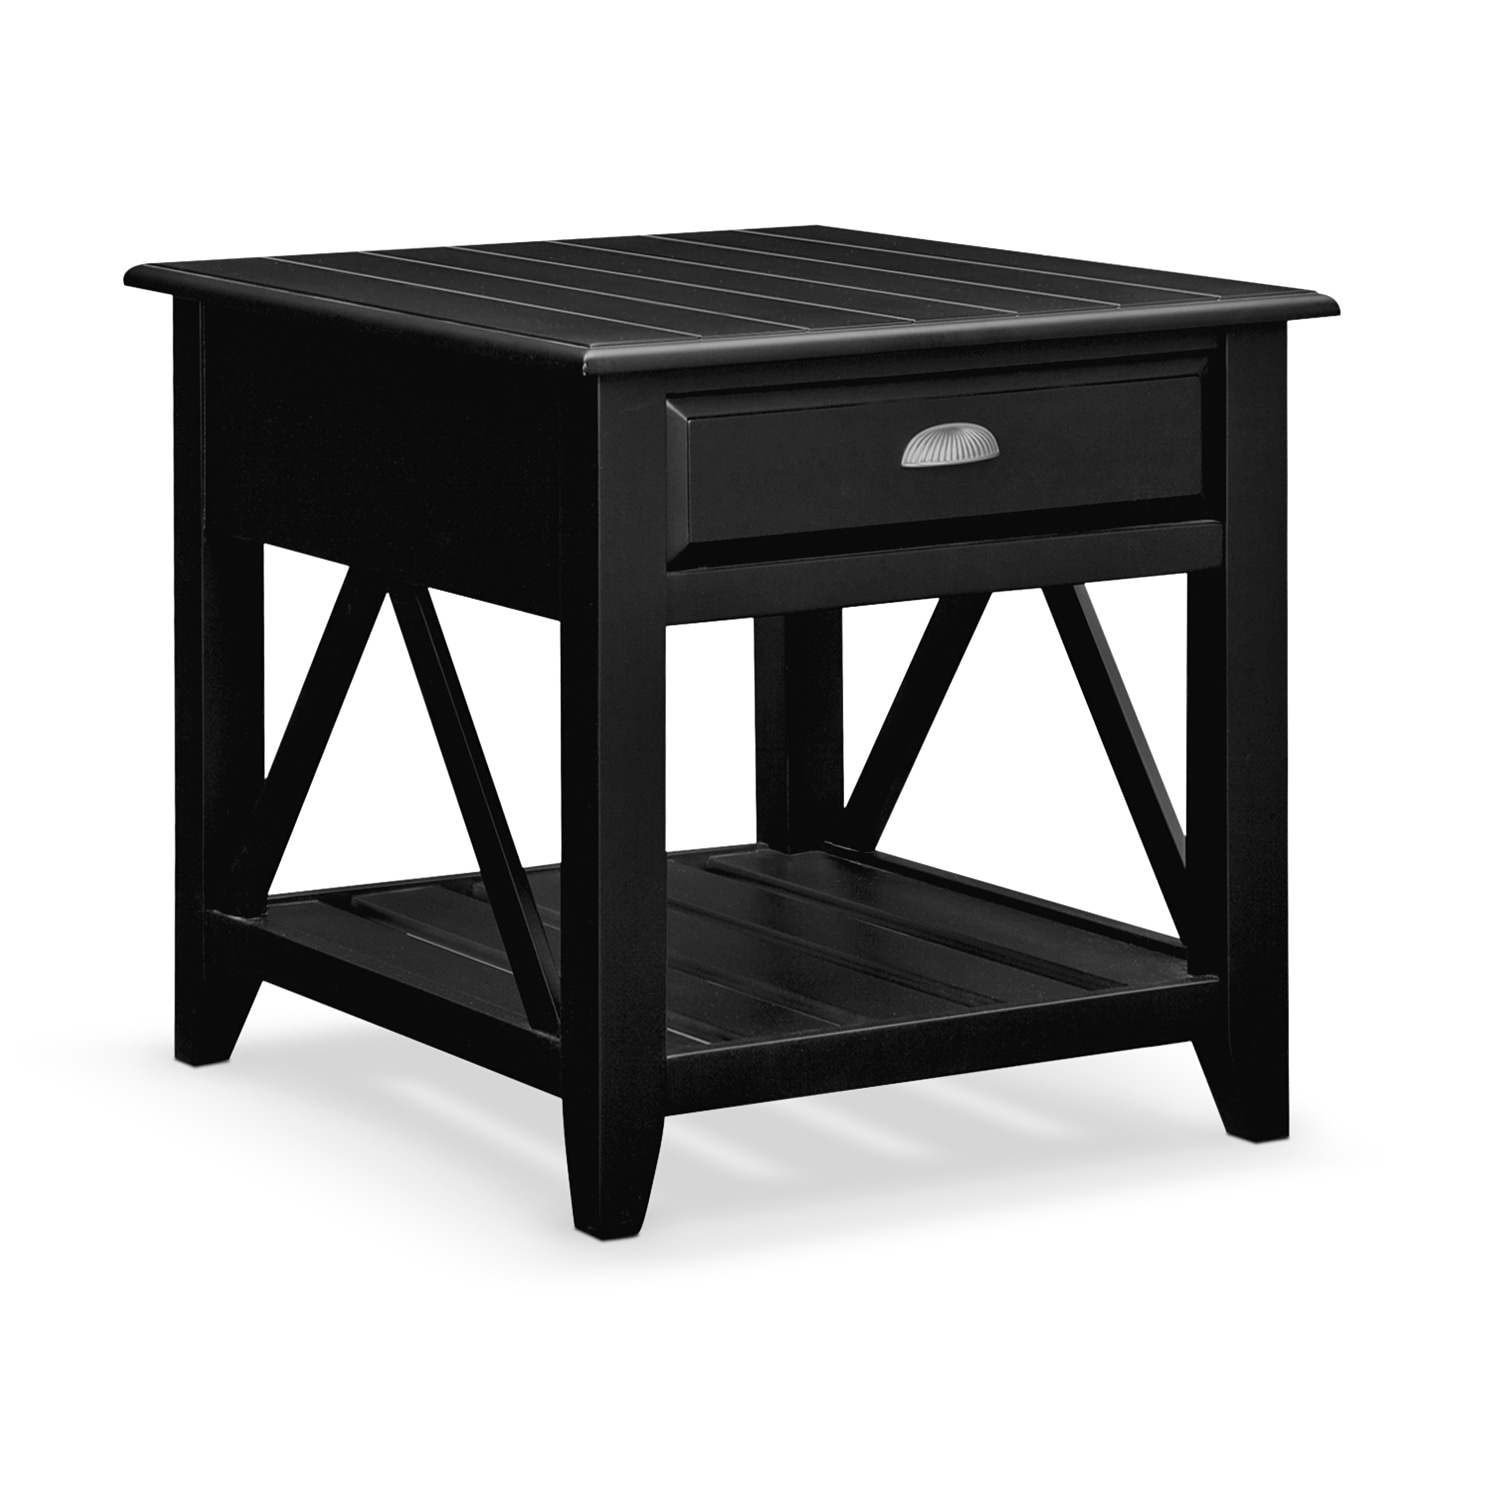 plantation cove coastal black end table value city furniture accent linens tables for uma wooden console couch arm pier dining room diy ideas dresser lamps affordable patio sets